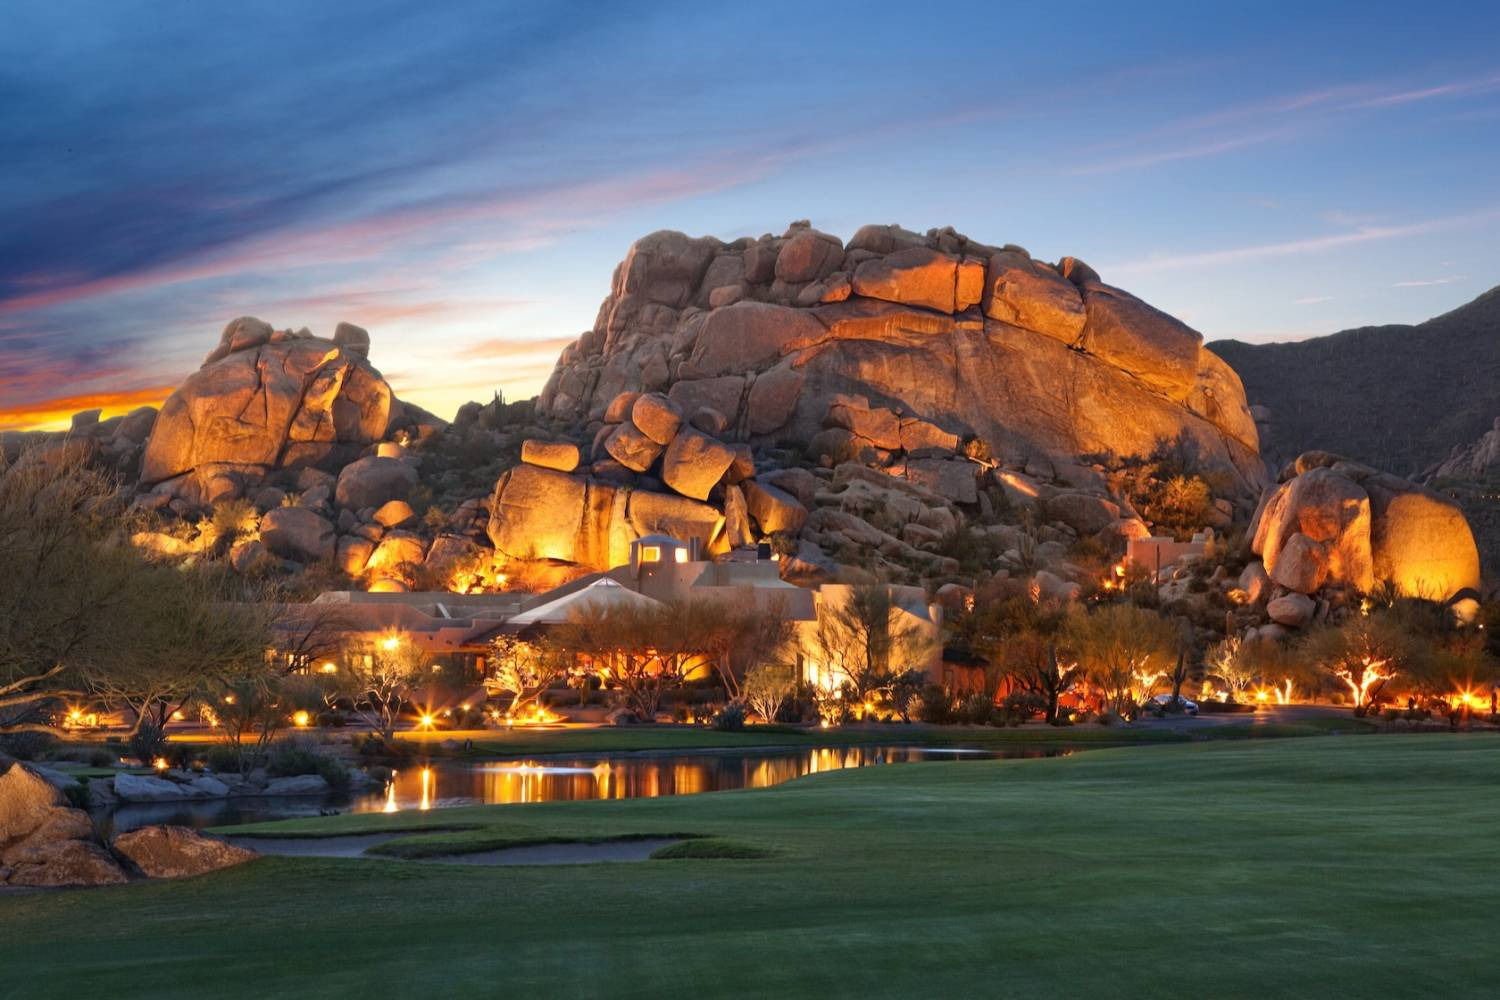 Enjoy a private chef after an amazing day in Carefree Arizona